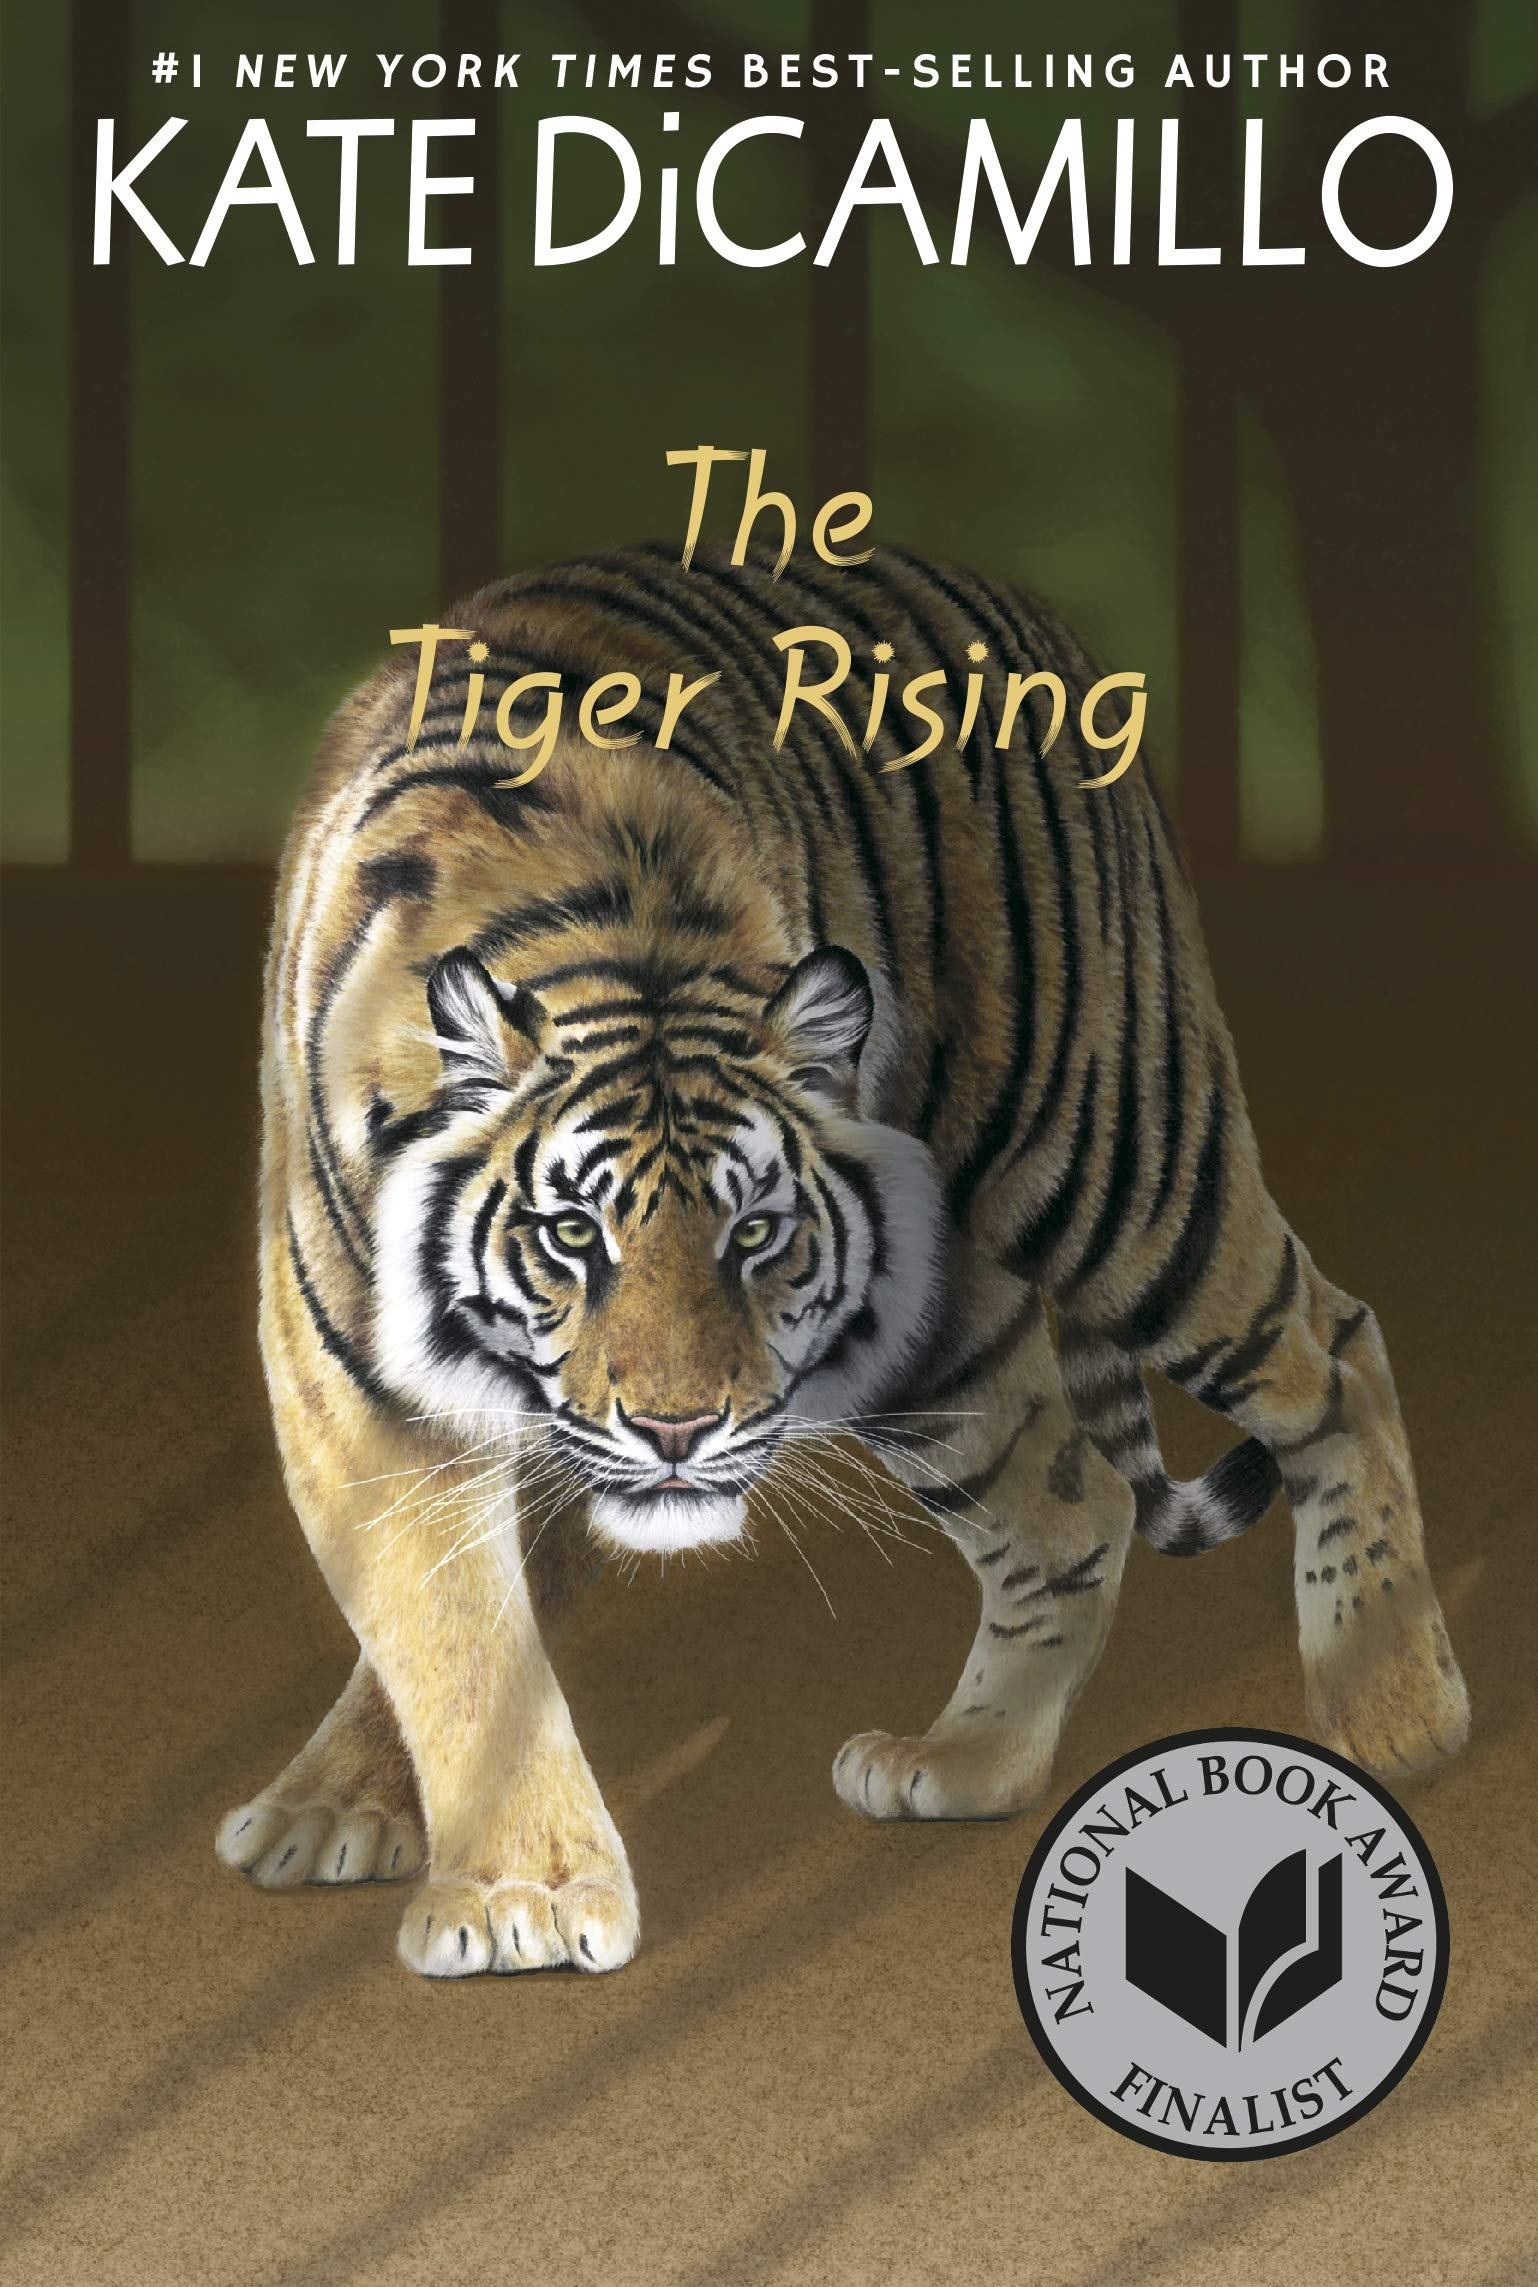 The Tiger Rising: Kate DiCamillo: 9780763680879: Amazon com: Books